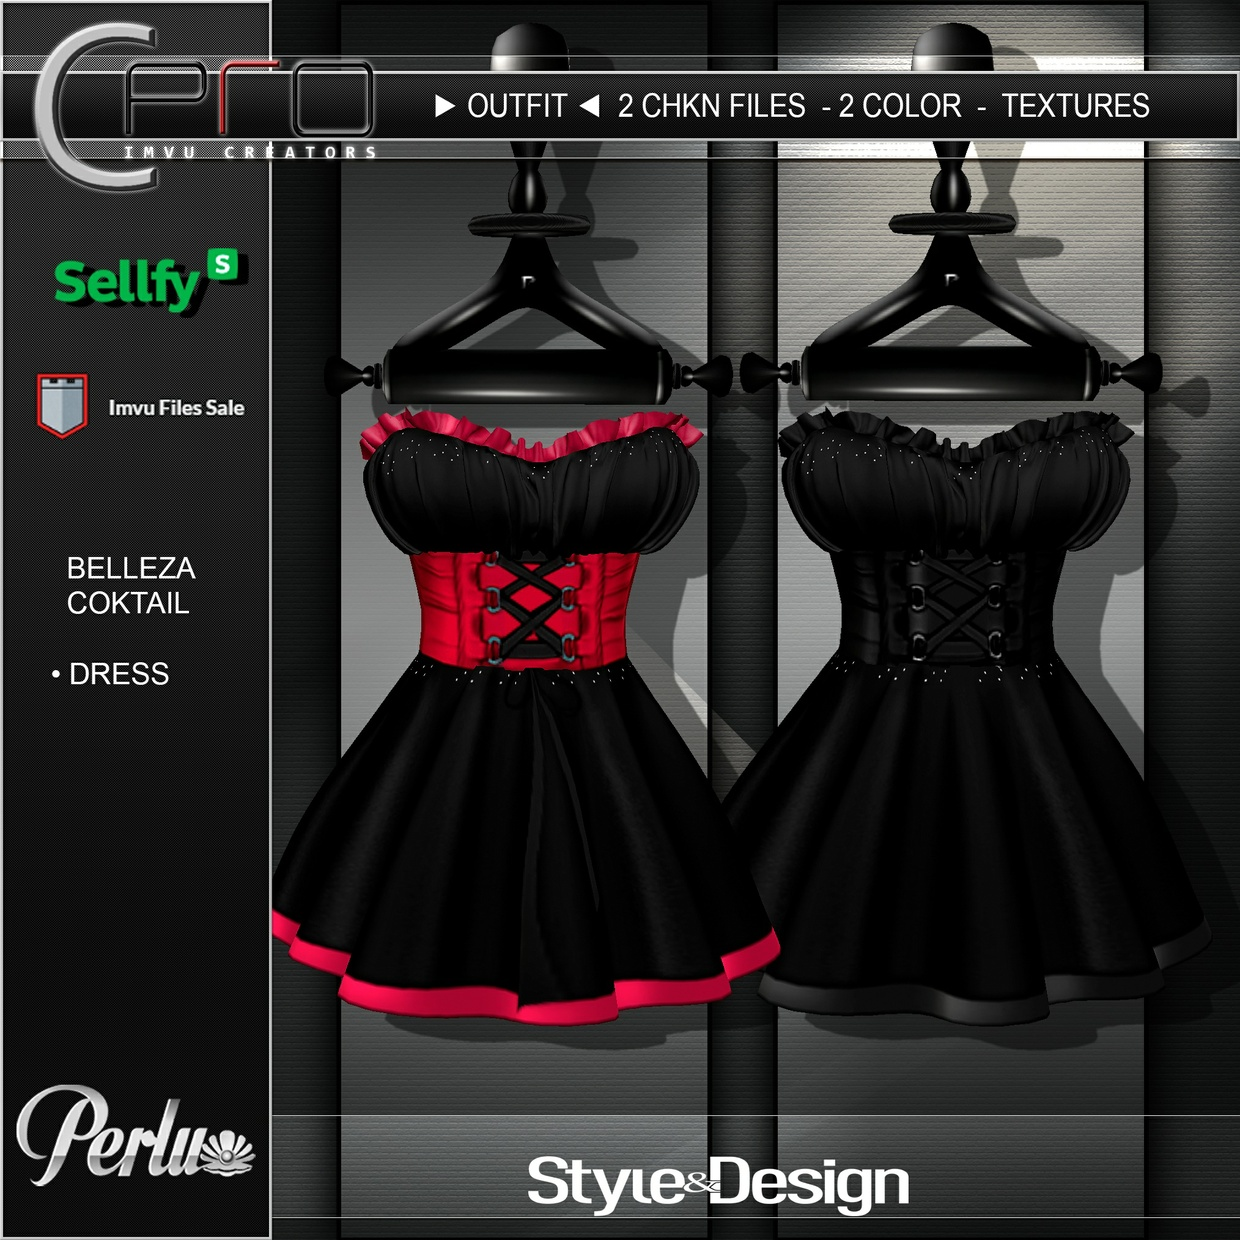 ►BELLEZA COCKTAIL DRESS◄